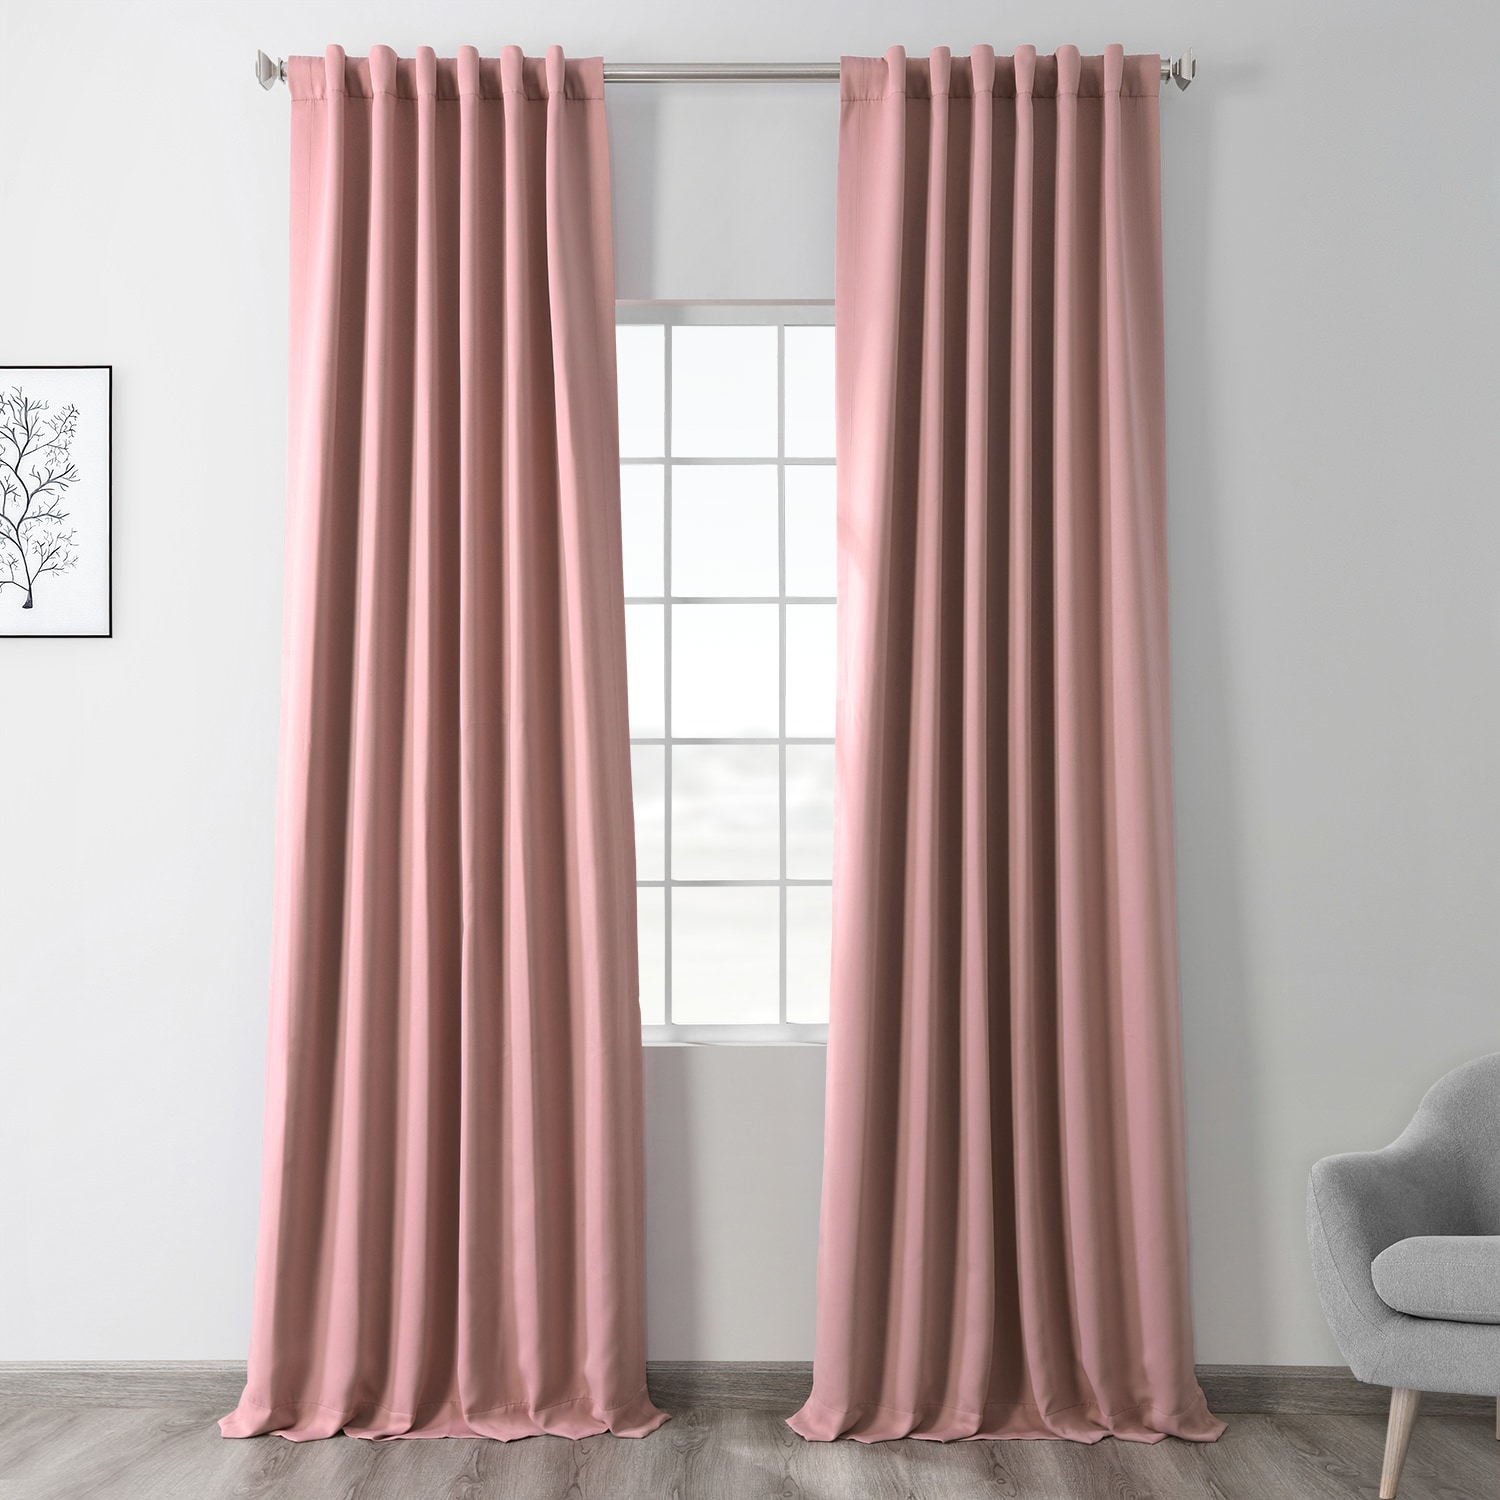 Fresco Blush Blackout Room Darkening Curtain